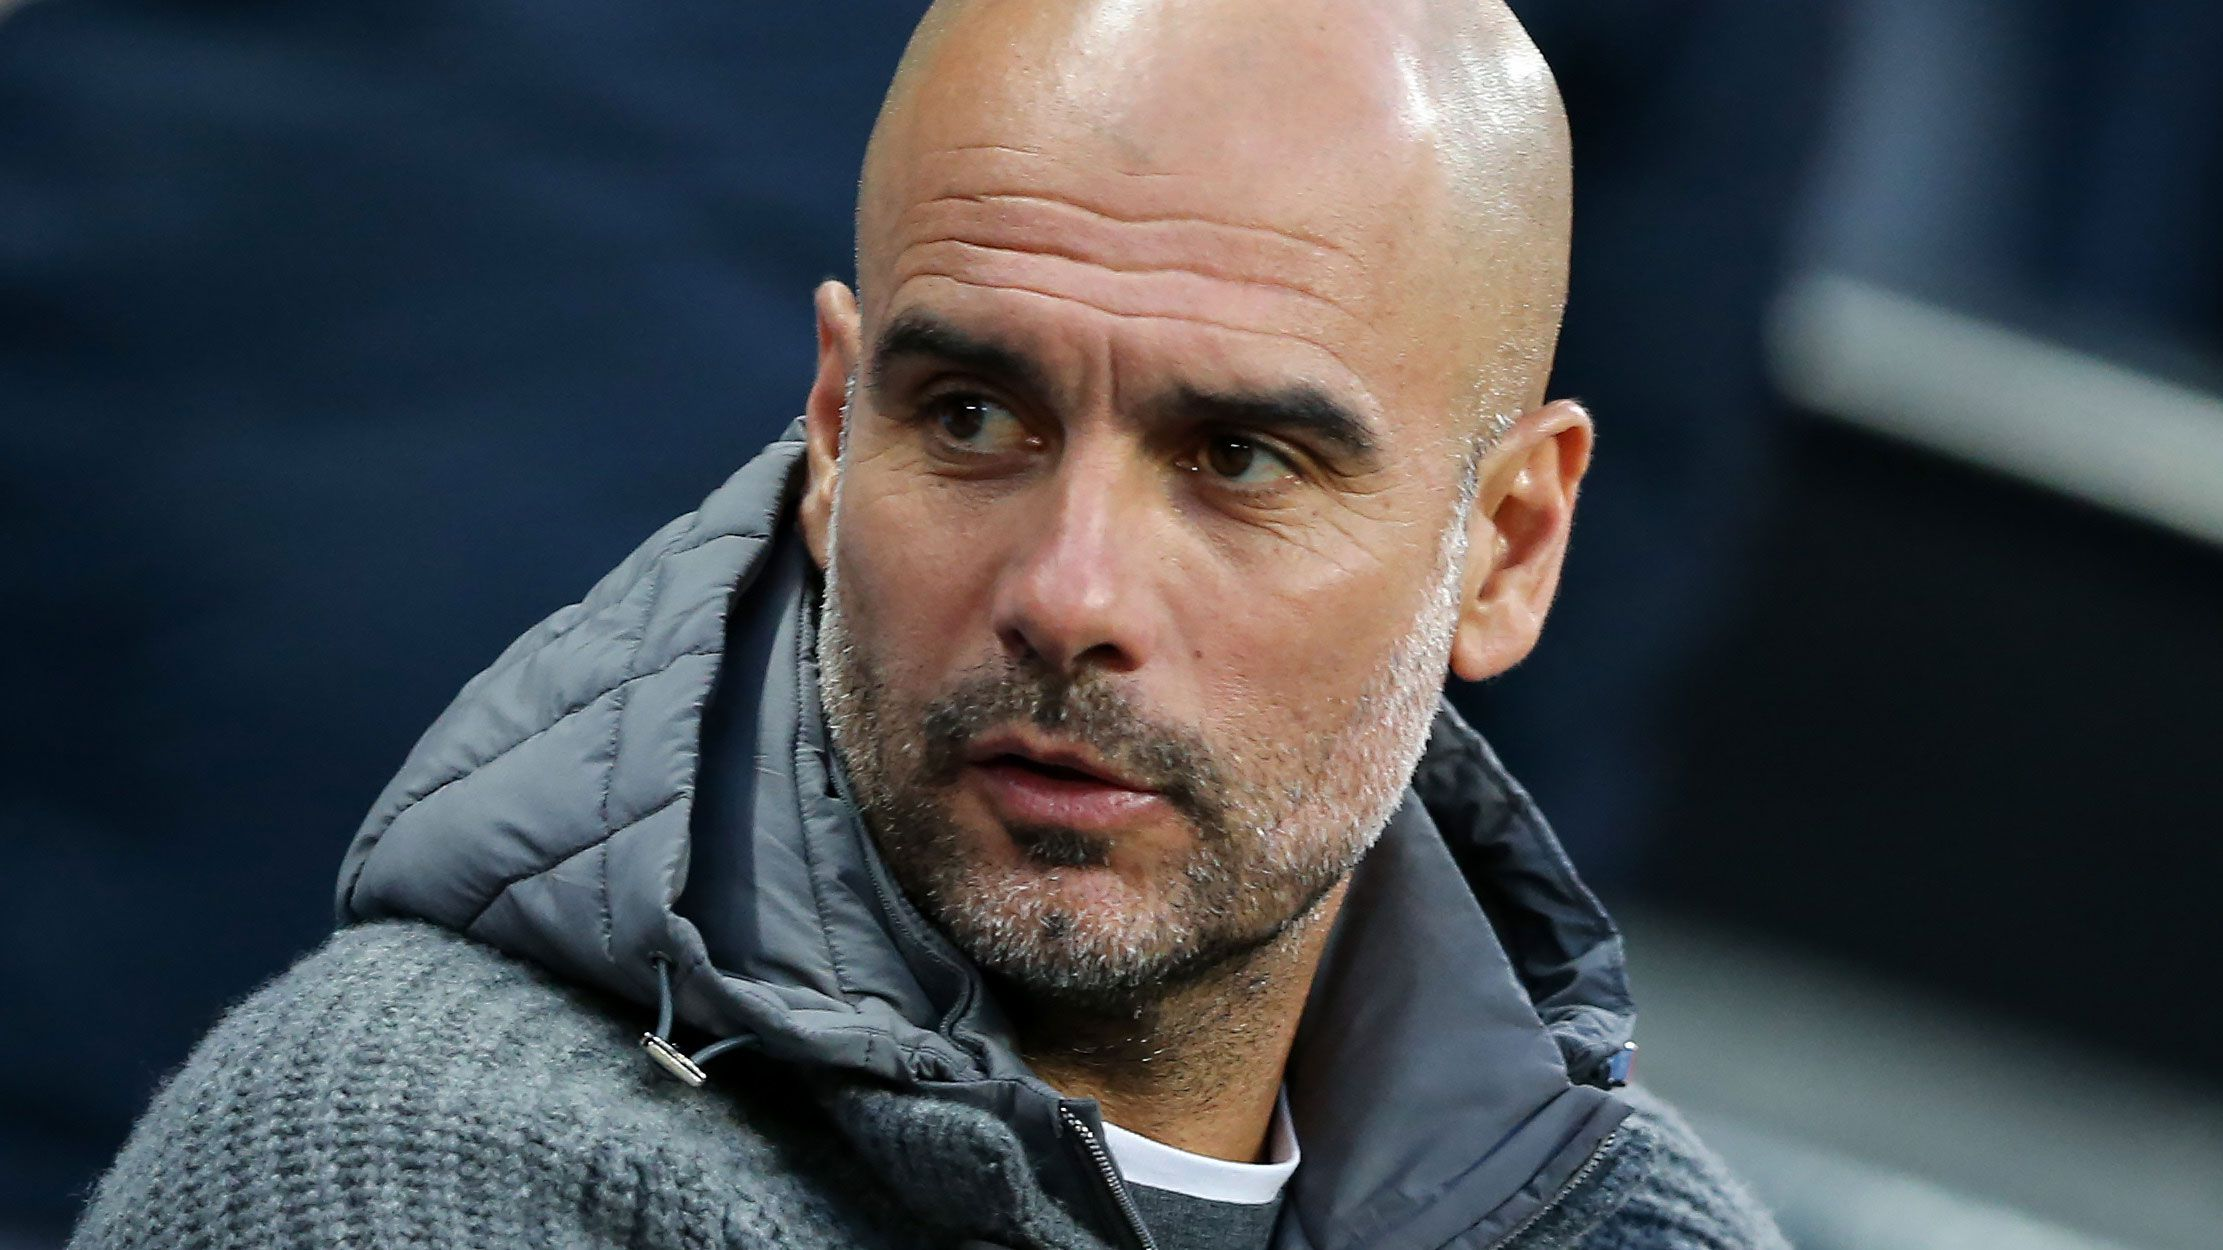 Coronavirus claims the life of Manchester City manager Pep Guardiola's mother